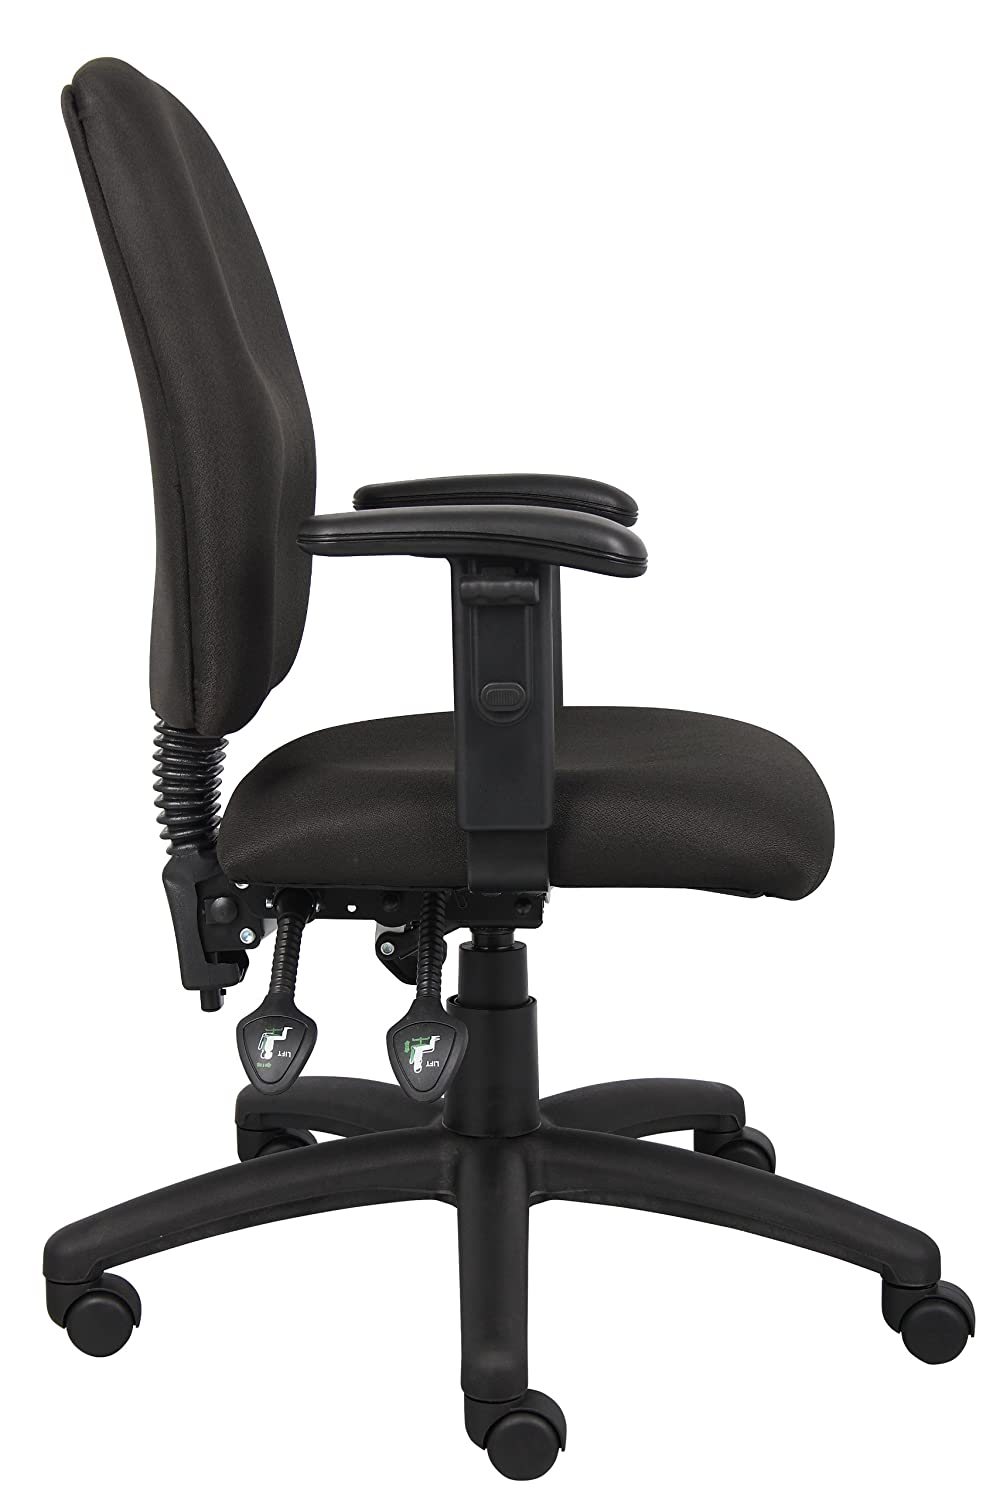 Boss Office Products B3035-BK Multi-Function Fabric Task Chair without Arms in Black 1137